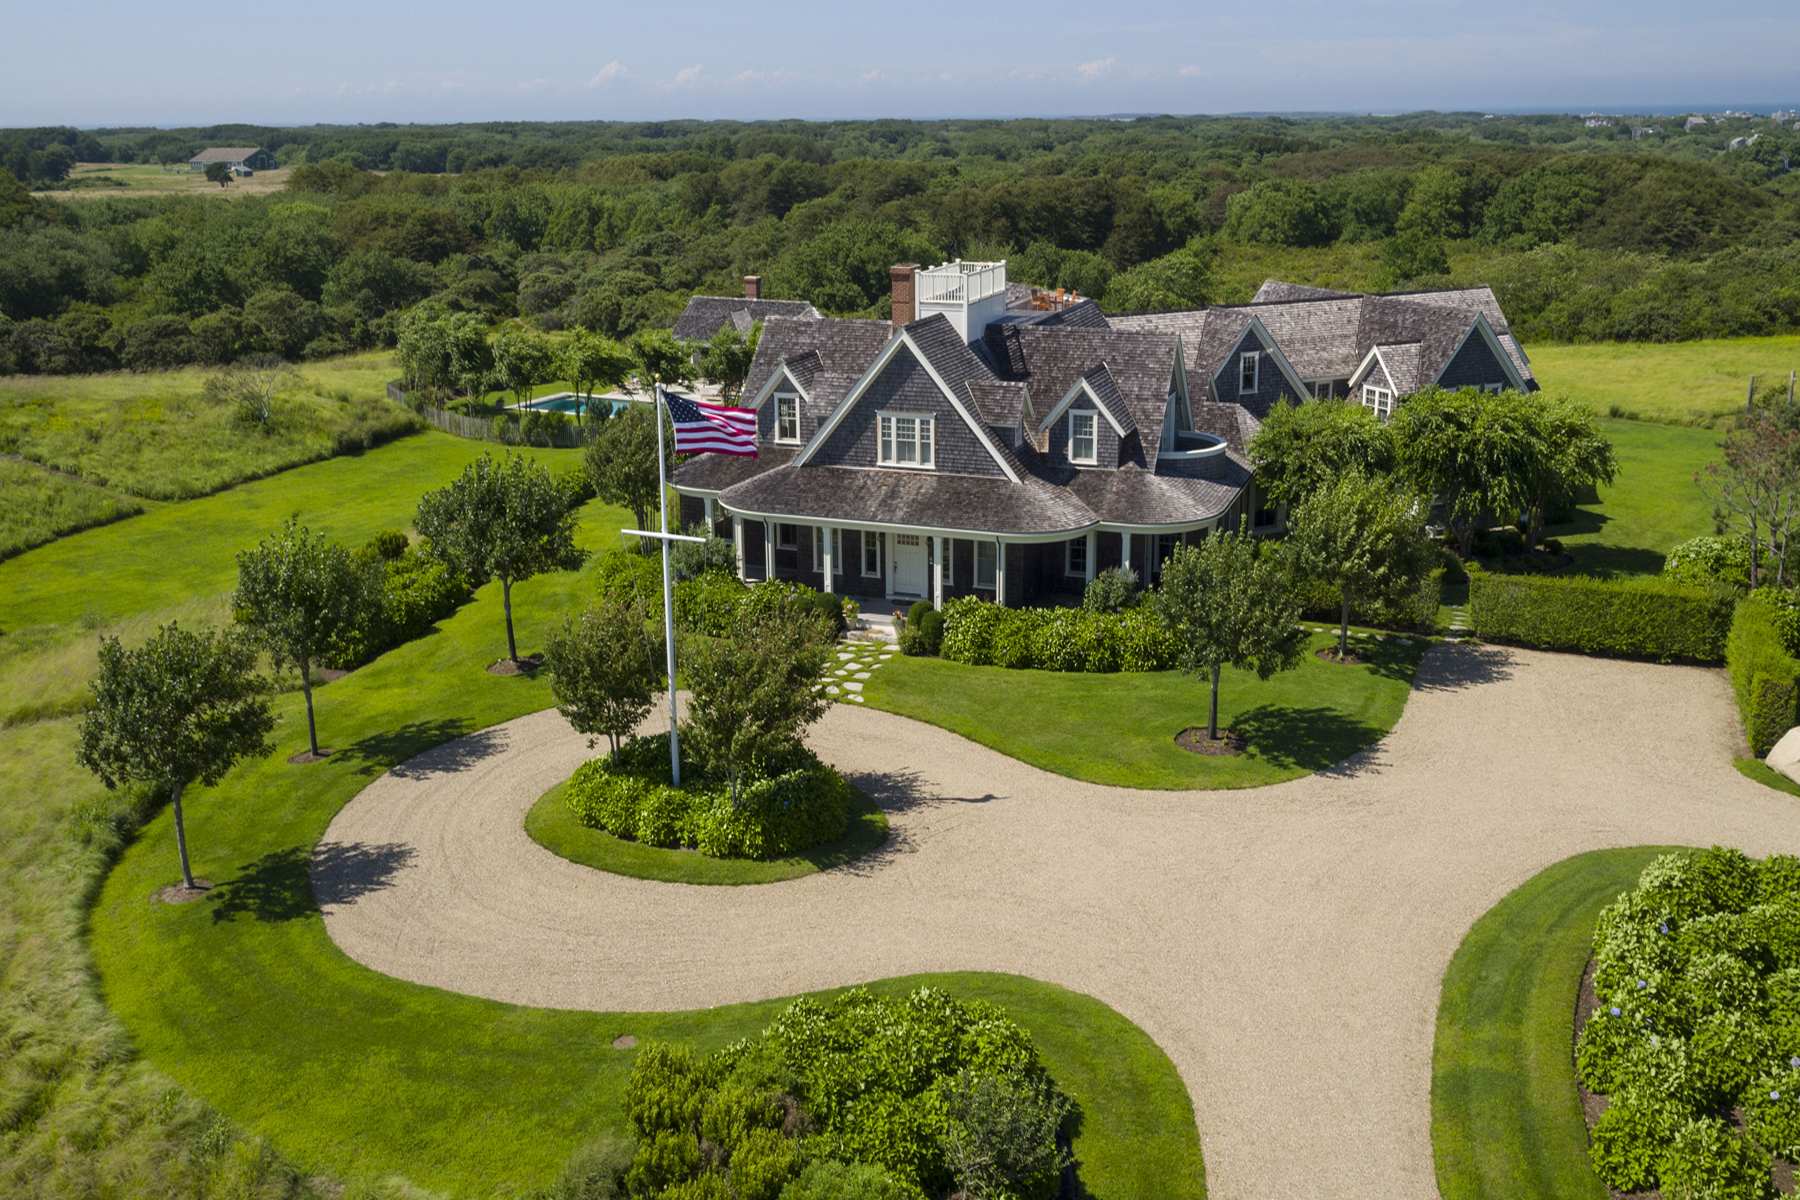 Maison unifamiliale pour l Vente à Private Estate Over 14 Acres 30R Quidnet Rd Nantucket, Massachusetts, 02554 États-Unis